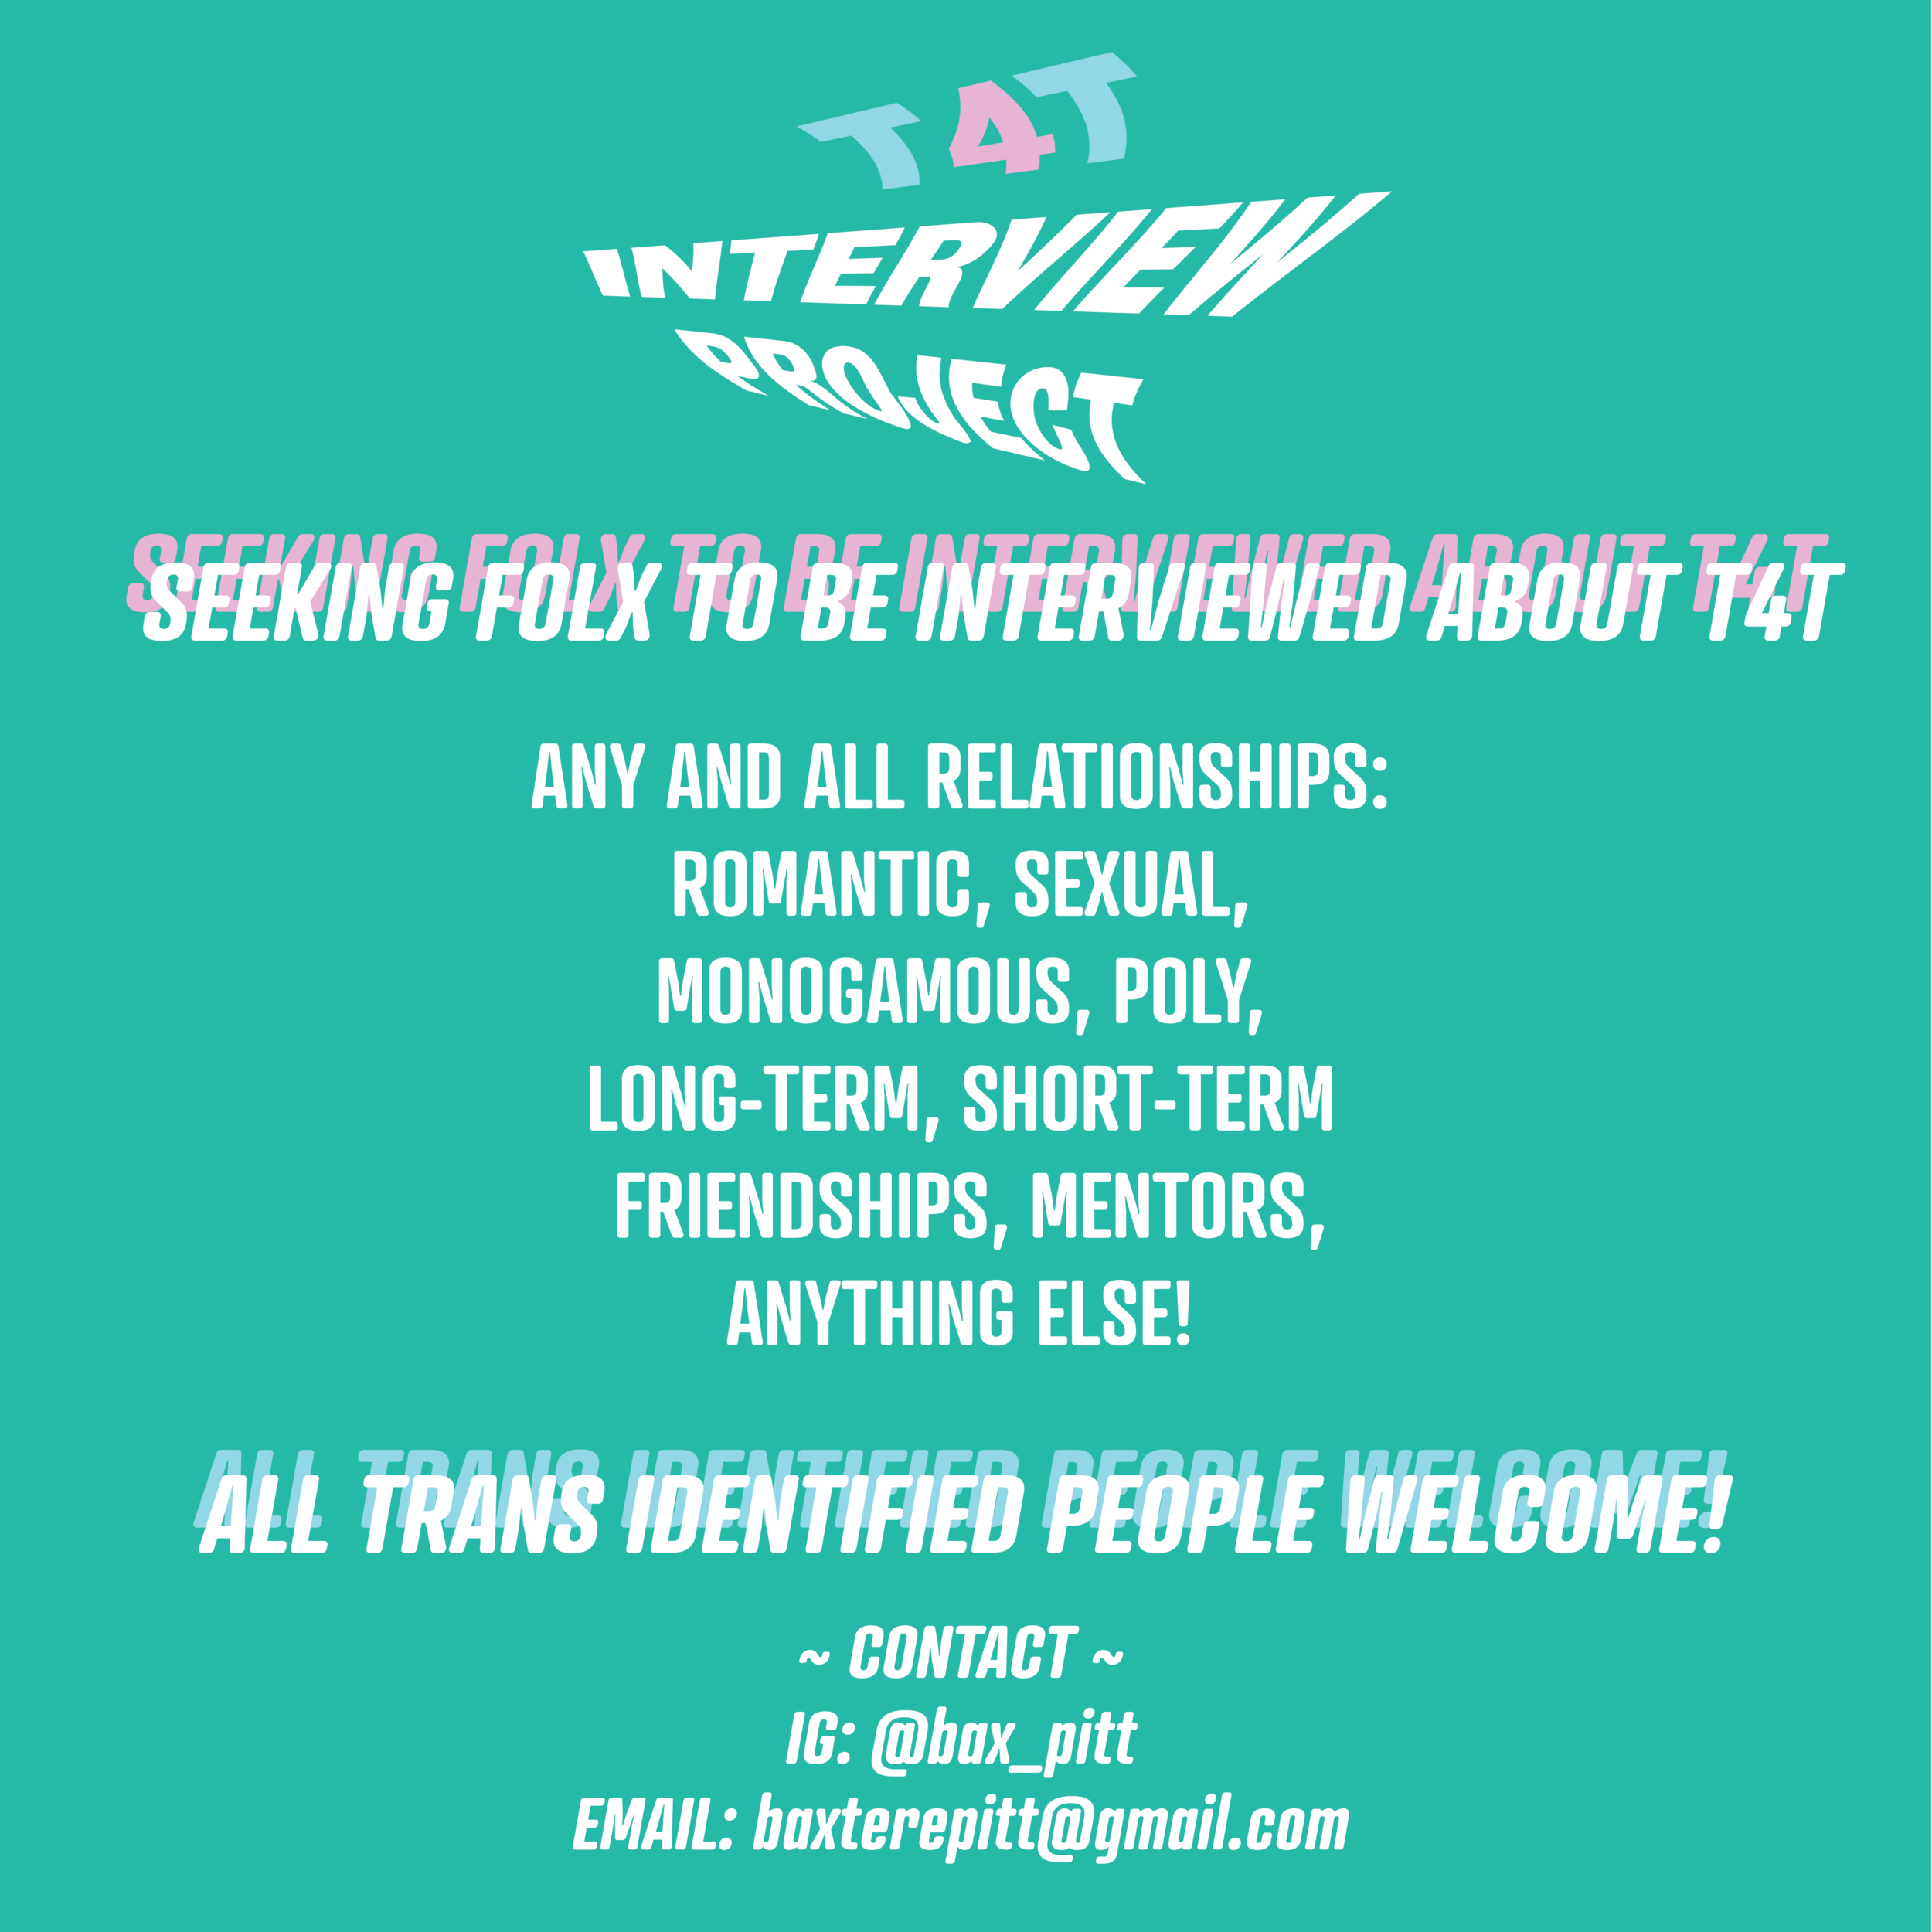 T4T INTERVIEW PROJECT IG2.png